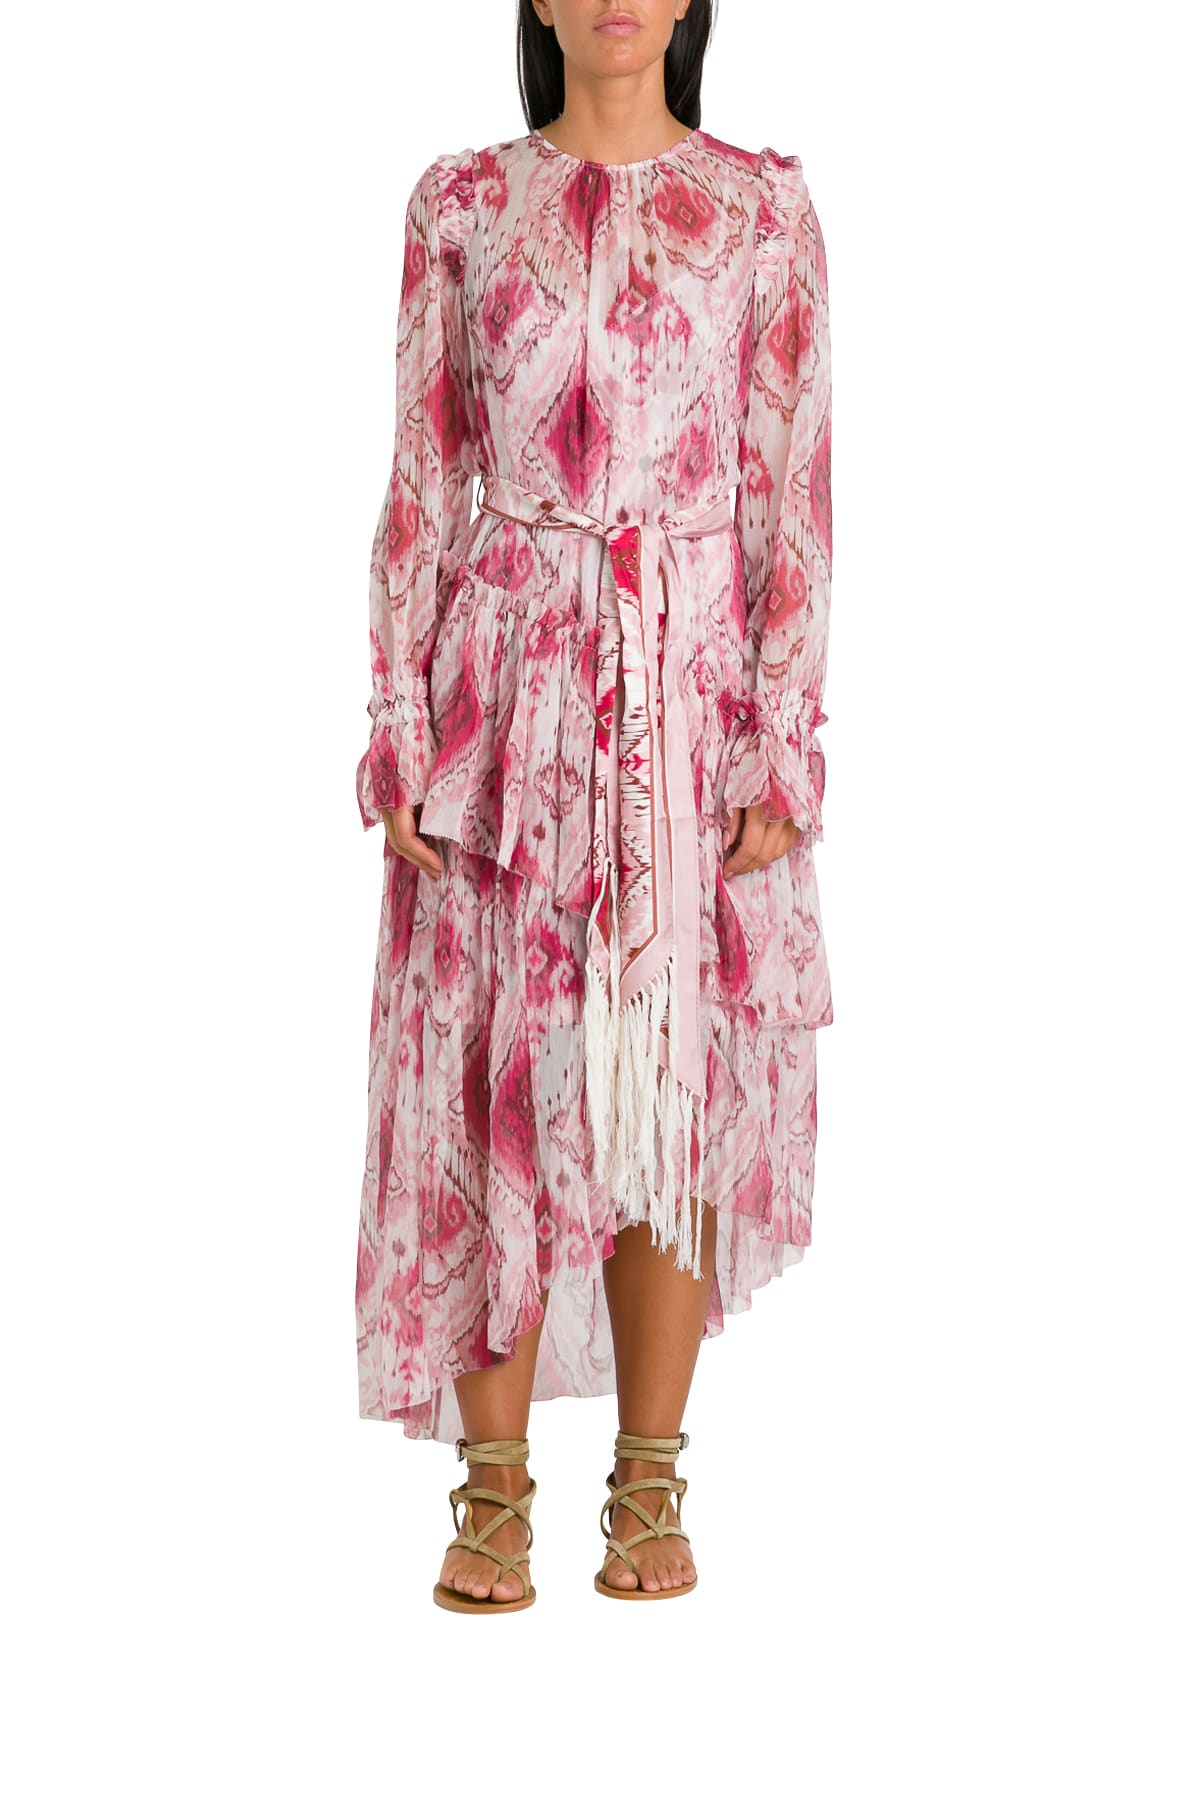 Buy Zimmermann Wavelenght Asymmetric Dress online, shop Zimmermann with free shipping